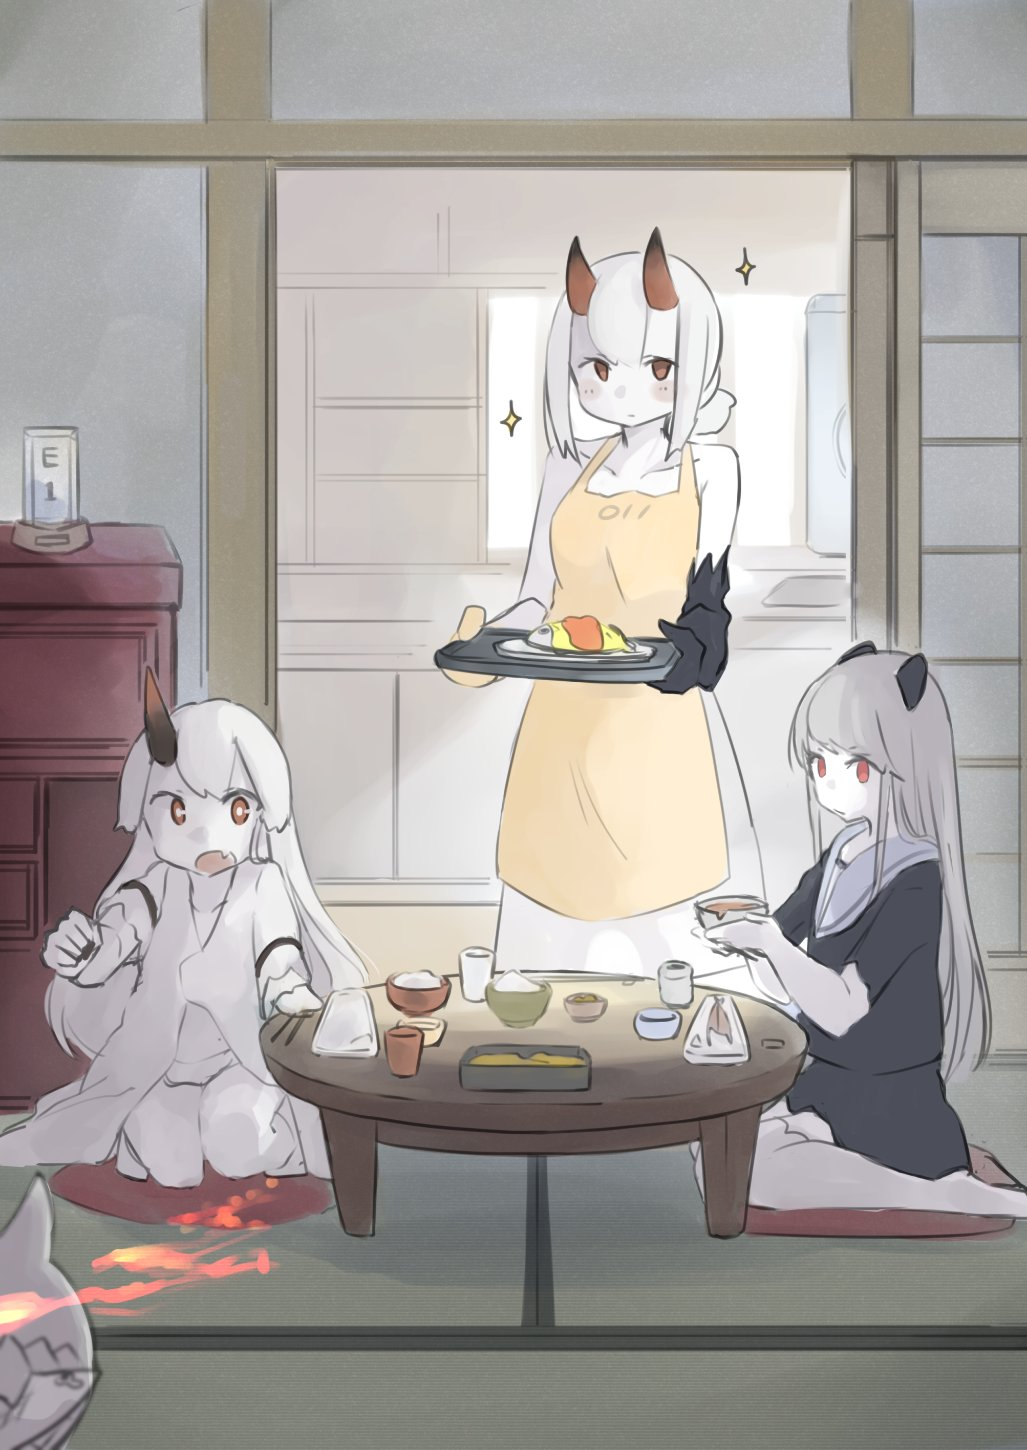 3girls abyssal_chishima_hime apron blush bowl chopsticks cushion enemy_aircraft_(kantai_collection) escort_hime fang fang_out food hair_between_eyes highres holding holding_bowl holding_tray horns kantai_collection long_hair lycoris_fubuki ma_rukan multiple_girls open_mouth orange_apron orange_eyes red_eyes rice rice_bowl sailor_collar seiza shinkaisei-kan short_hair short_sleeves signature single_horn sitting skin_fang sparkle tatami tray white_hair white_sailor_collar white_skin zabuton